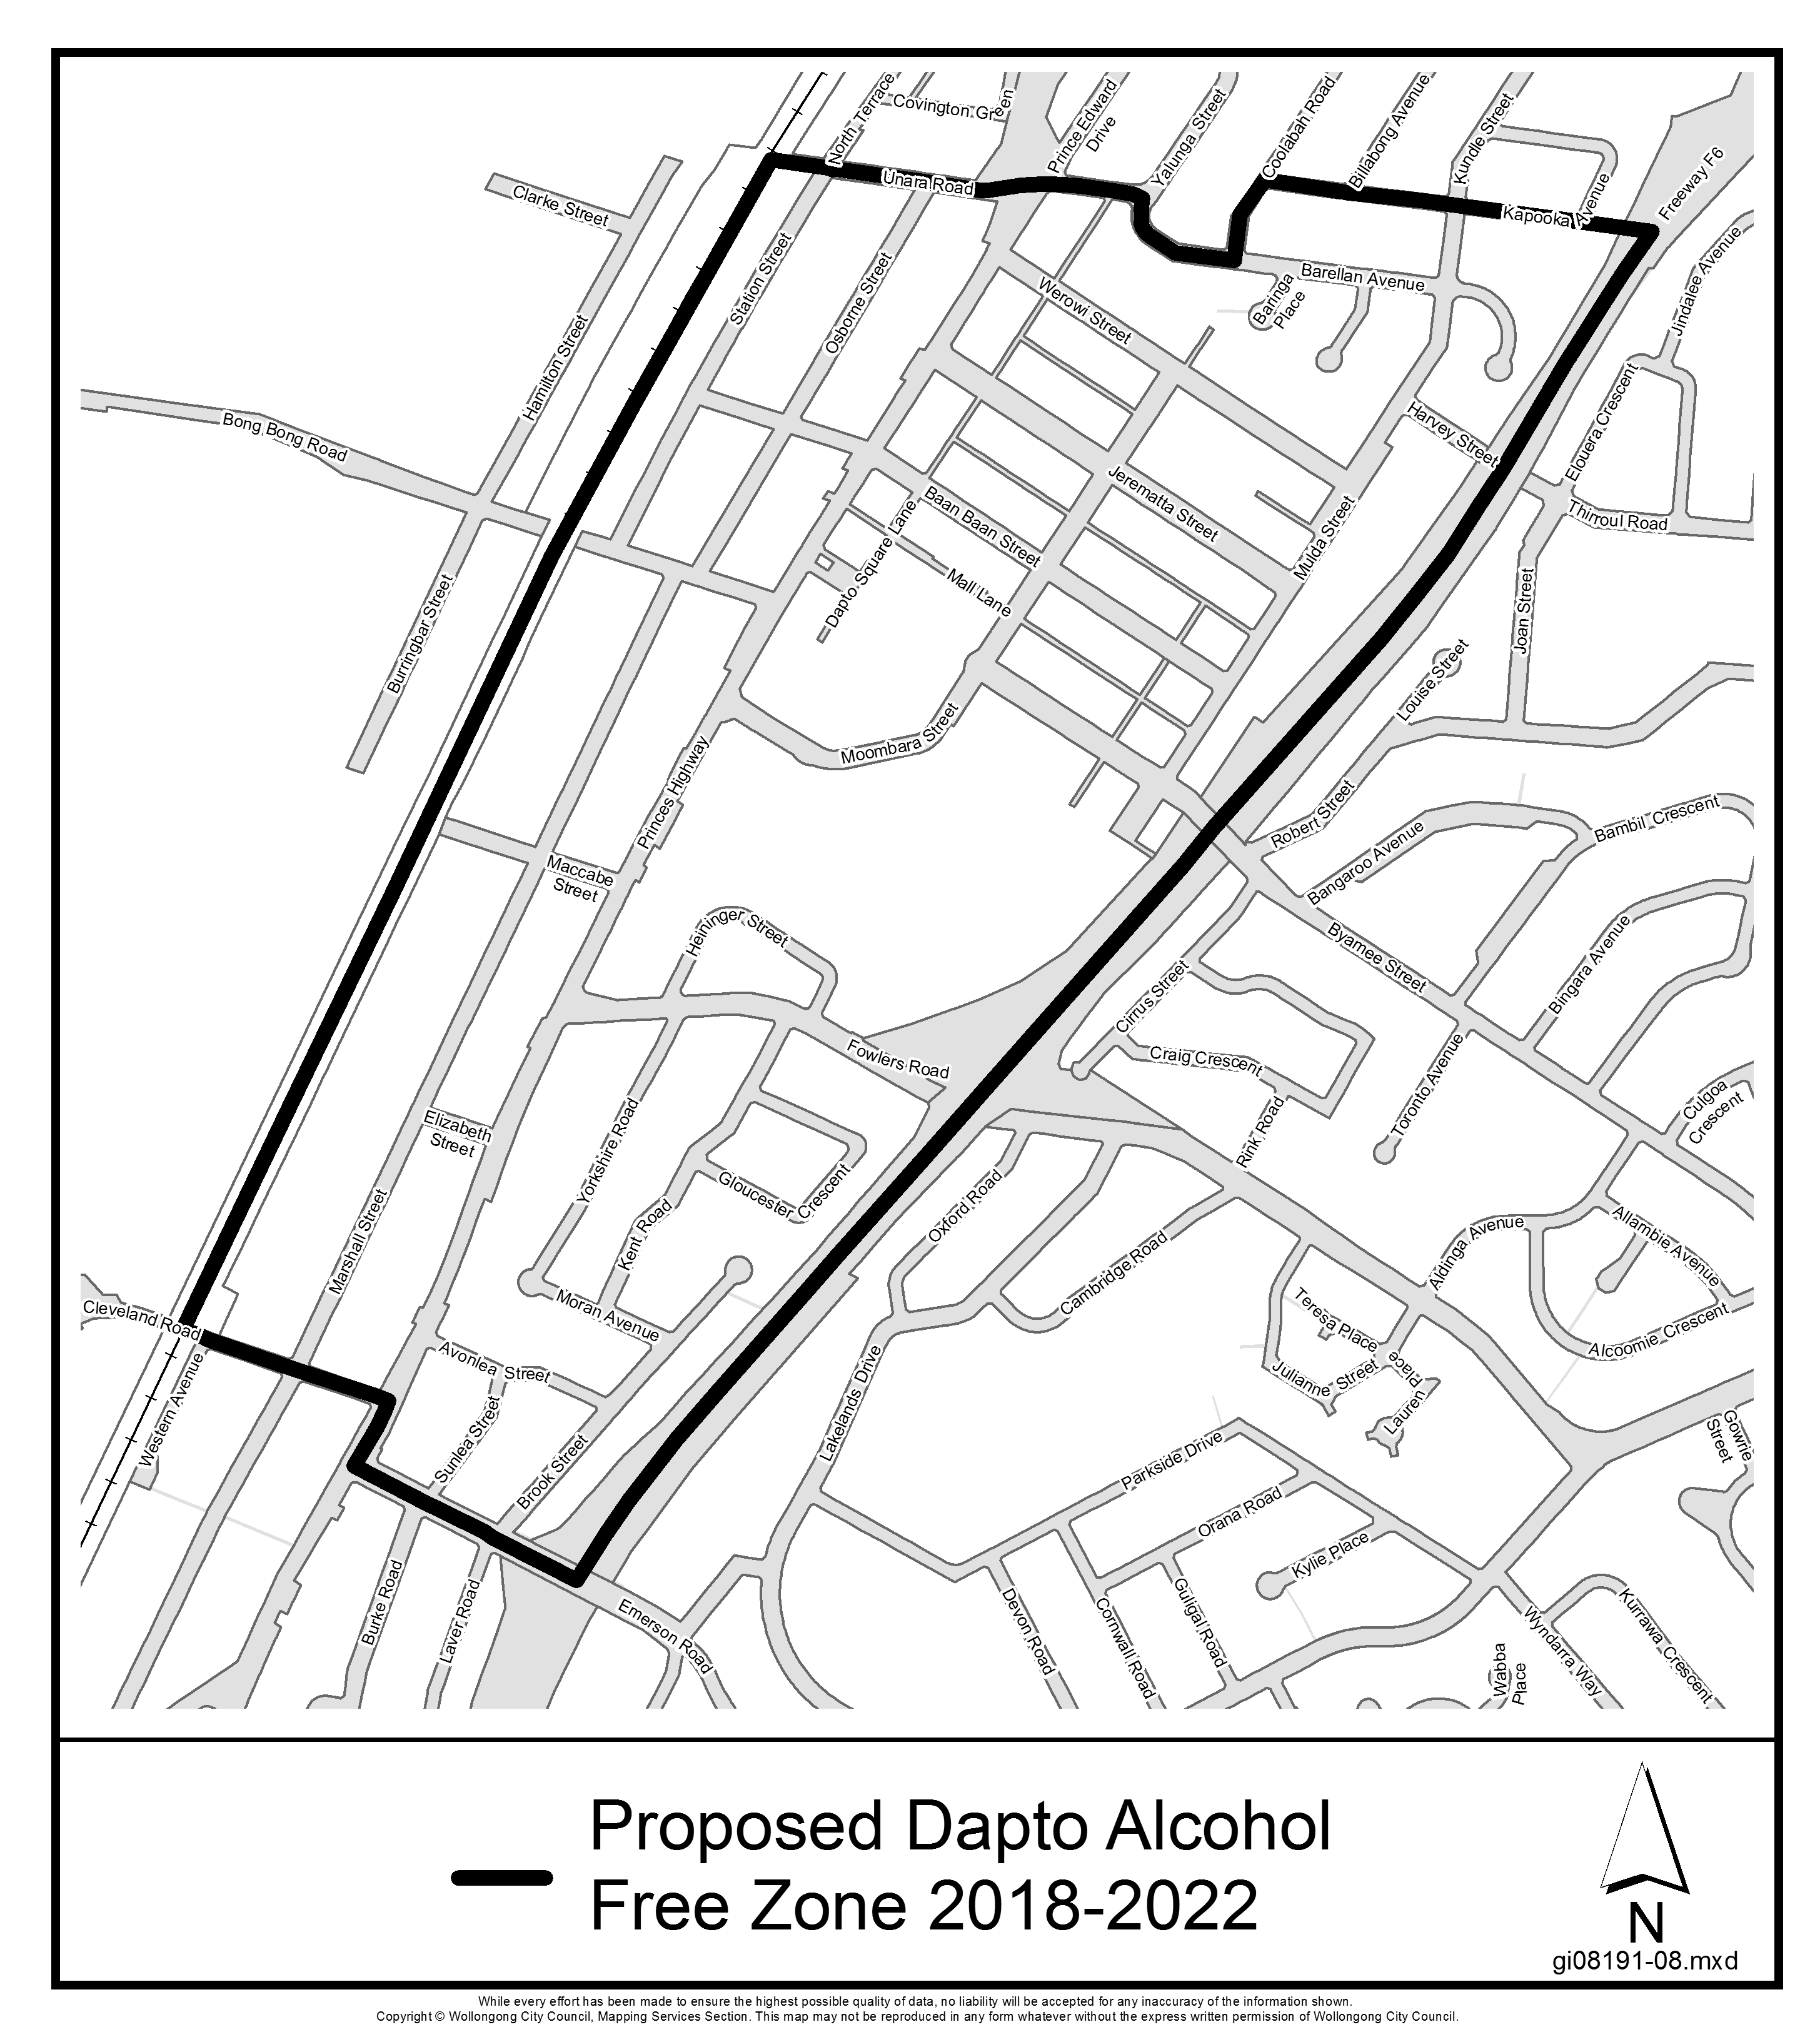 Proposed dapto alcohol free zone 2018 2022